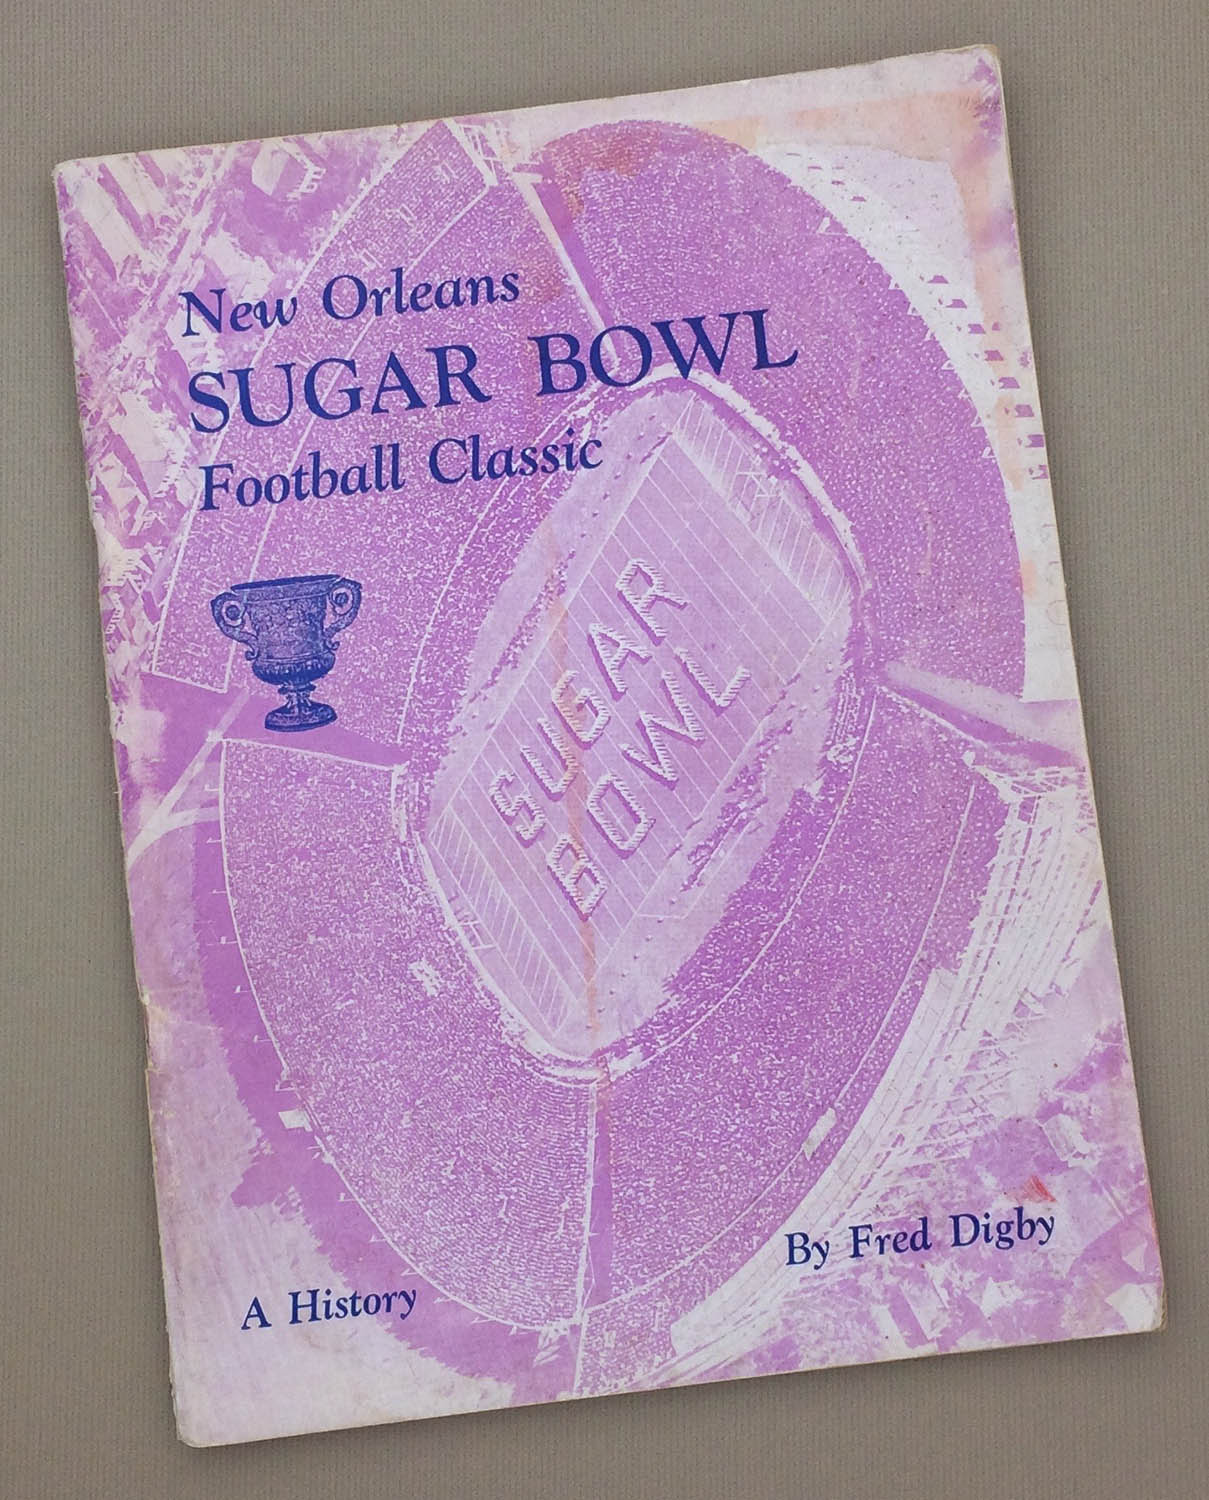 The New Orleans Sugar Bowl Football Classic